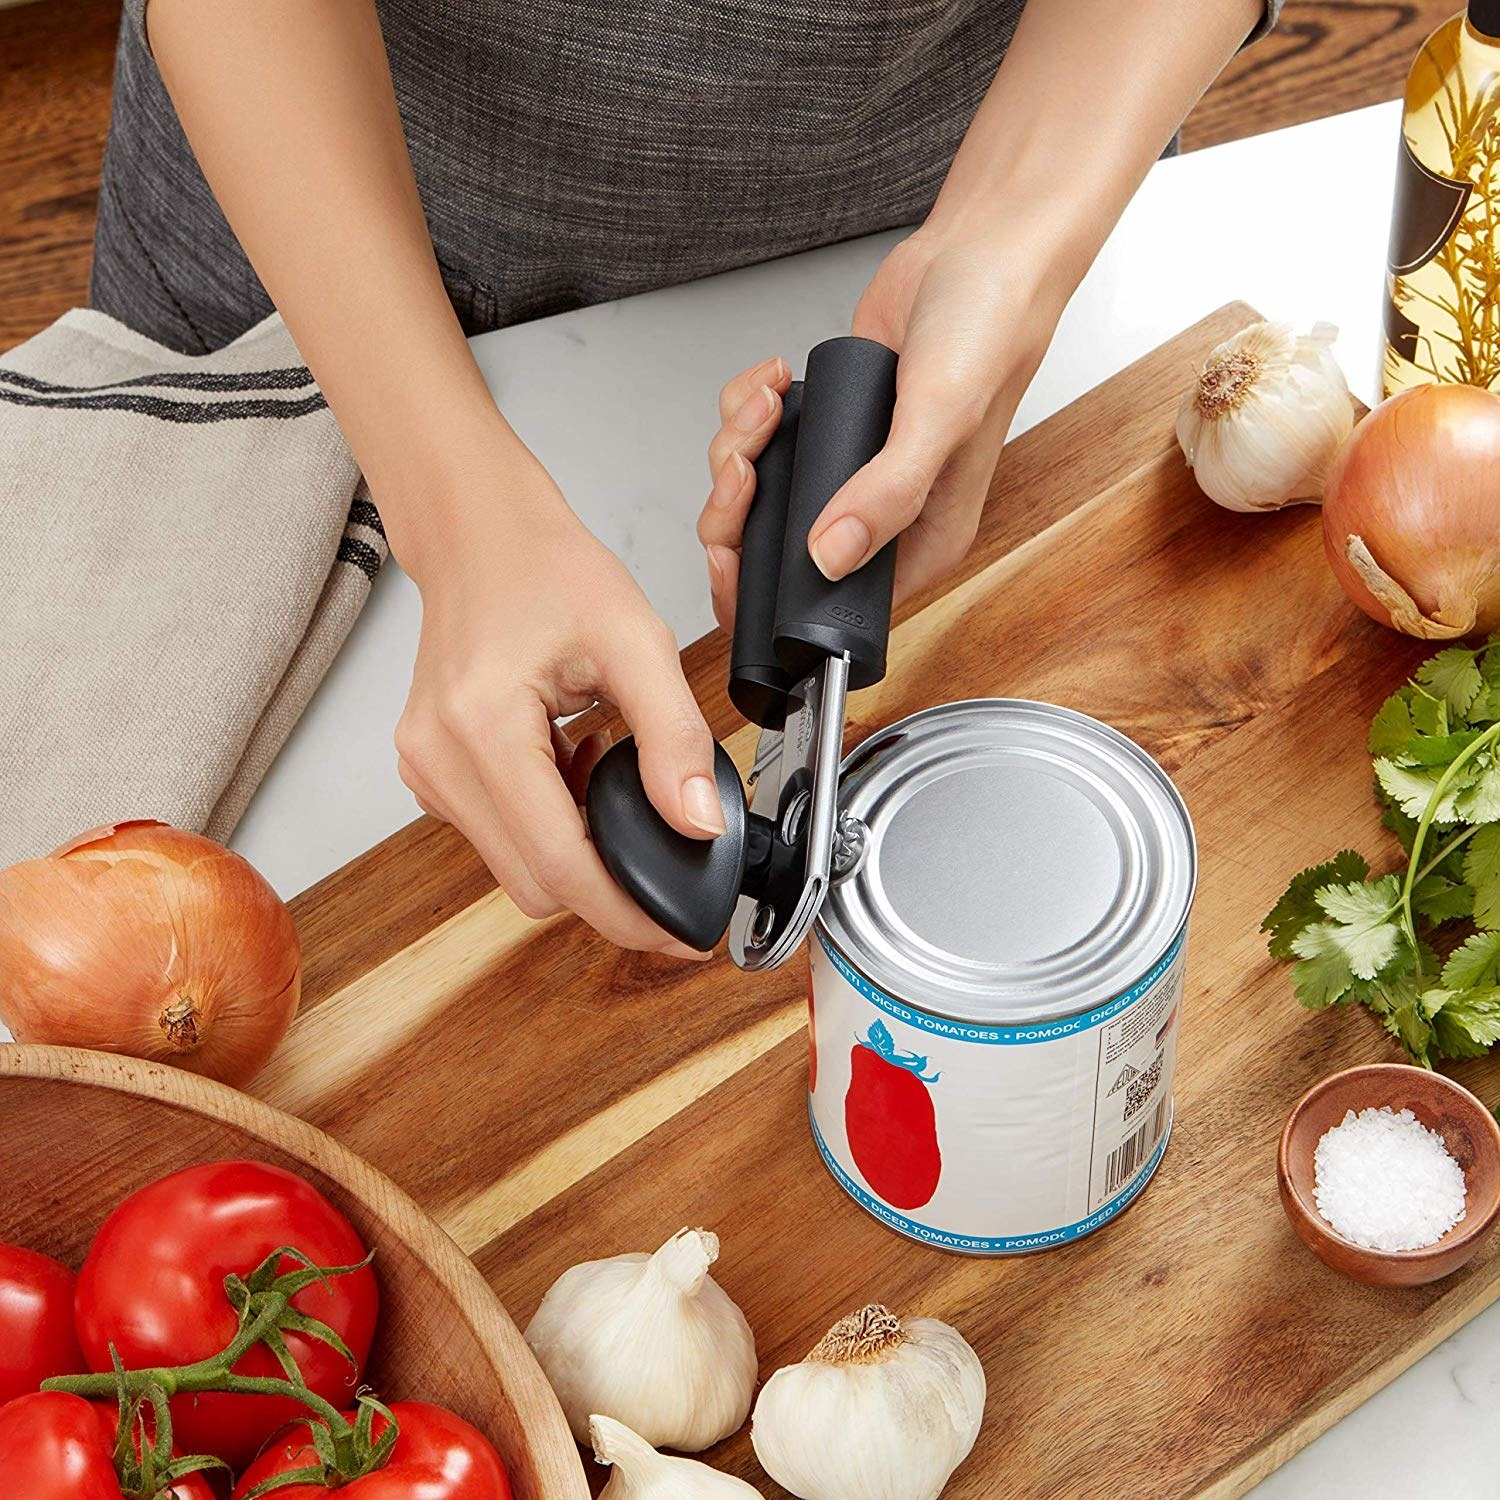 A person using the can opener